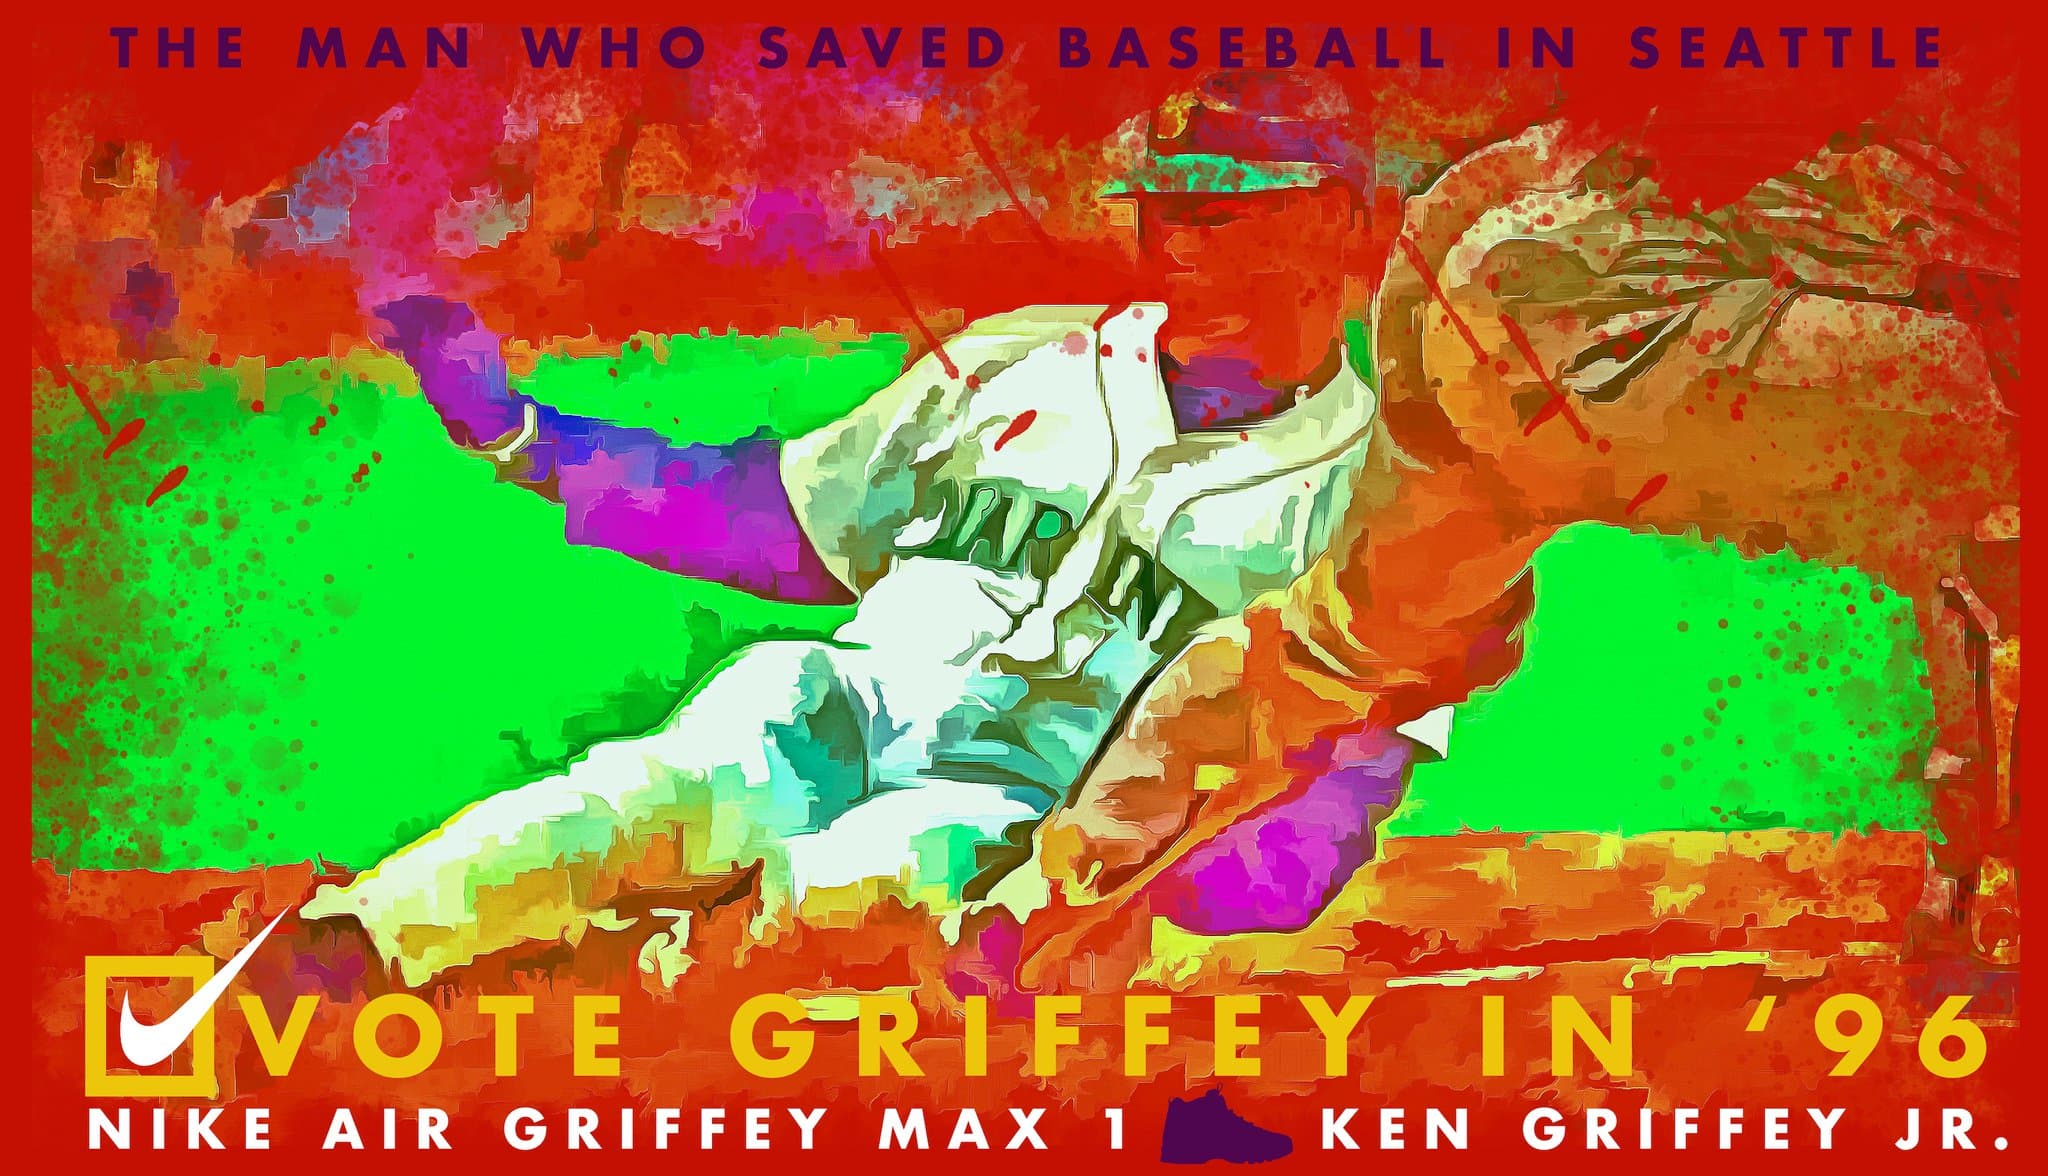 Cards & Kicks: Ken Griffey Jr